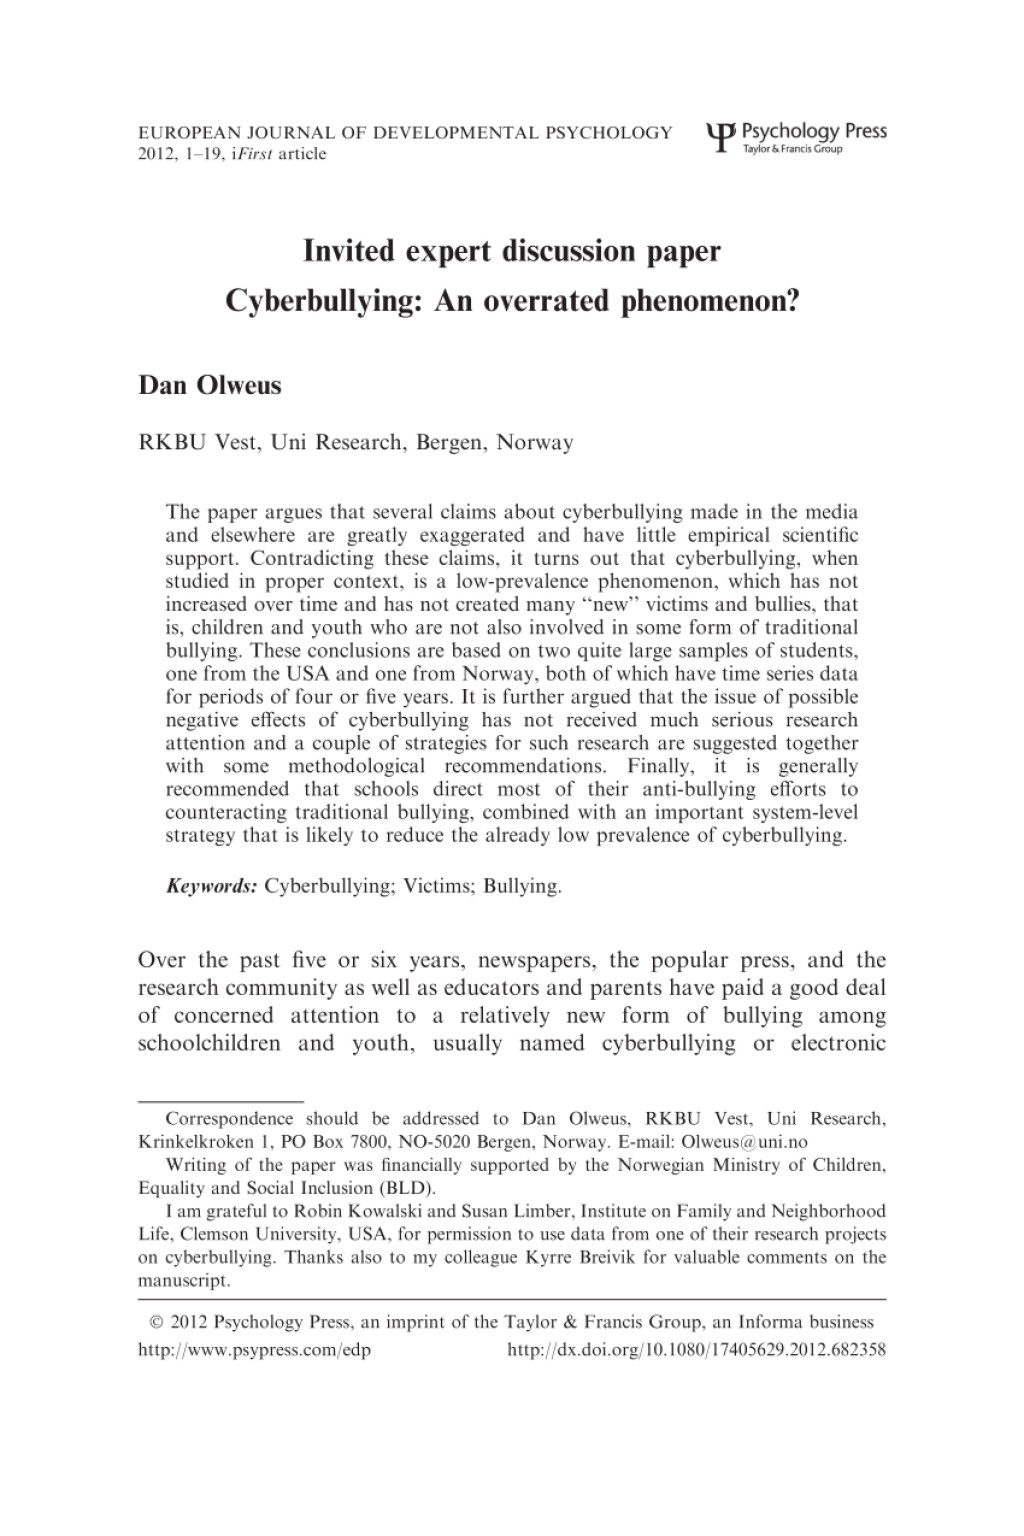 008 Researchs On Cyber Bullying Largepreview Dreaded Research Papers Paper Proposal Articles Cyberbullying About In The Philippines Pdf Large